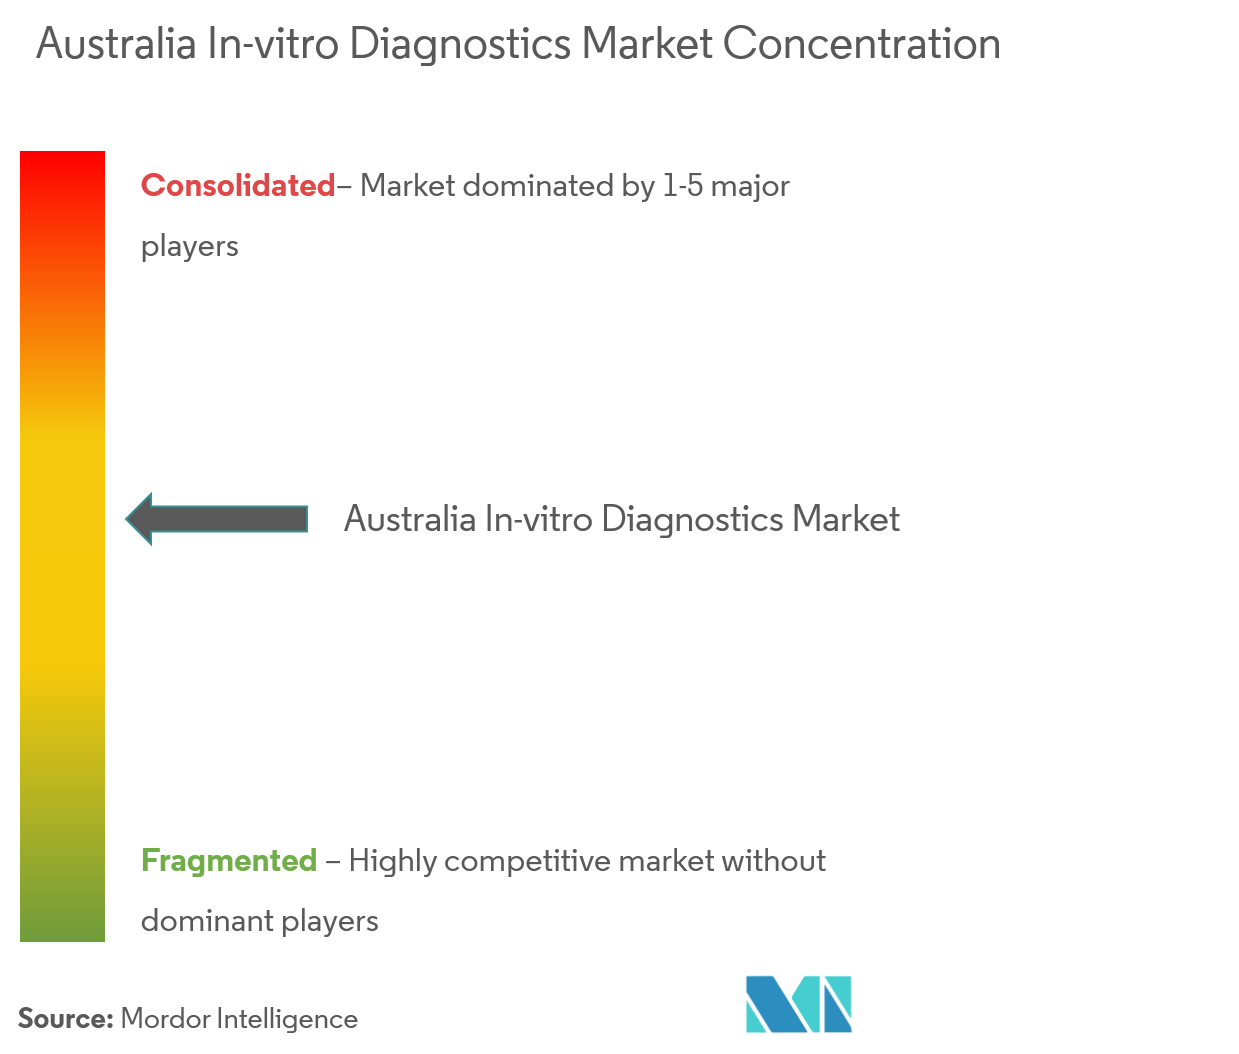 Australia In-vitro Diagnostics-3